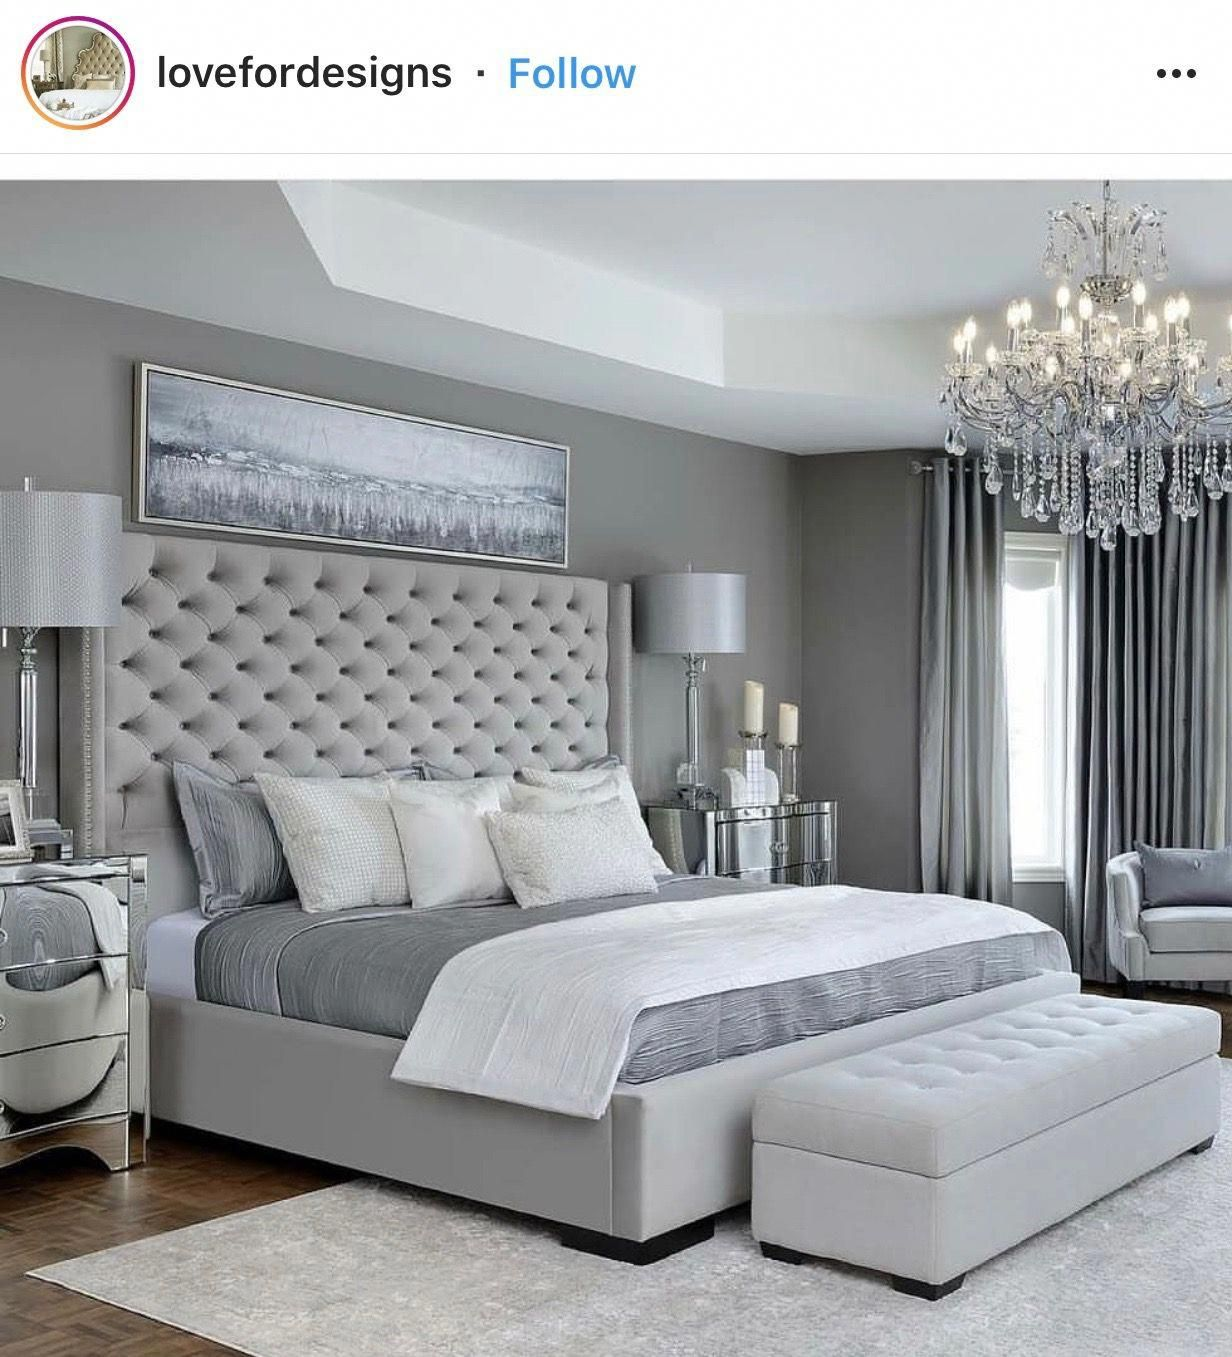 I Like How Neat And Tidy The Bed Is In This Shot Homeaccents Grey Bedroom Design Simple Bedroom Design Master Bedrooms Decor